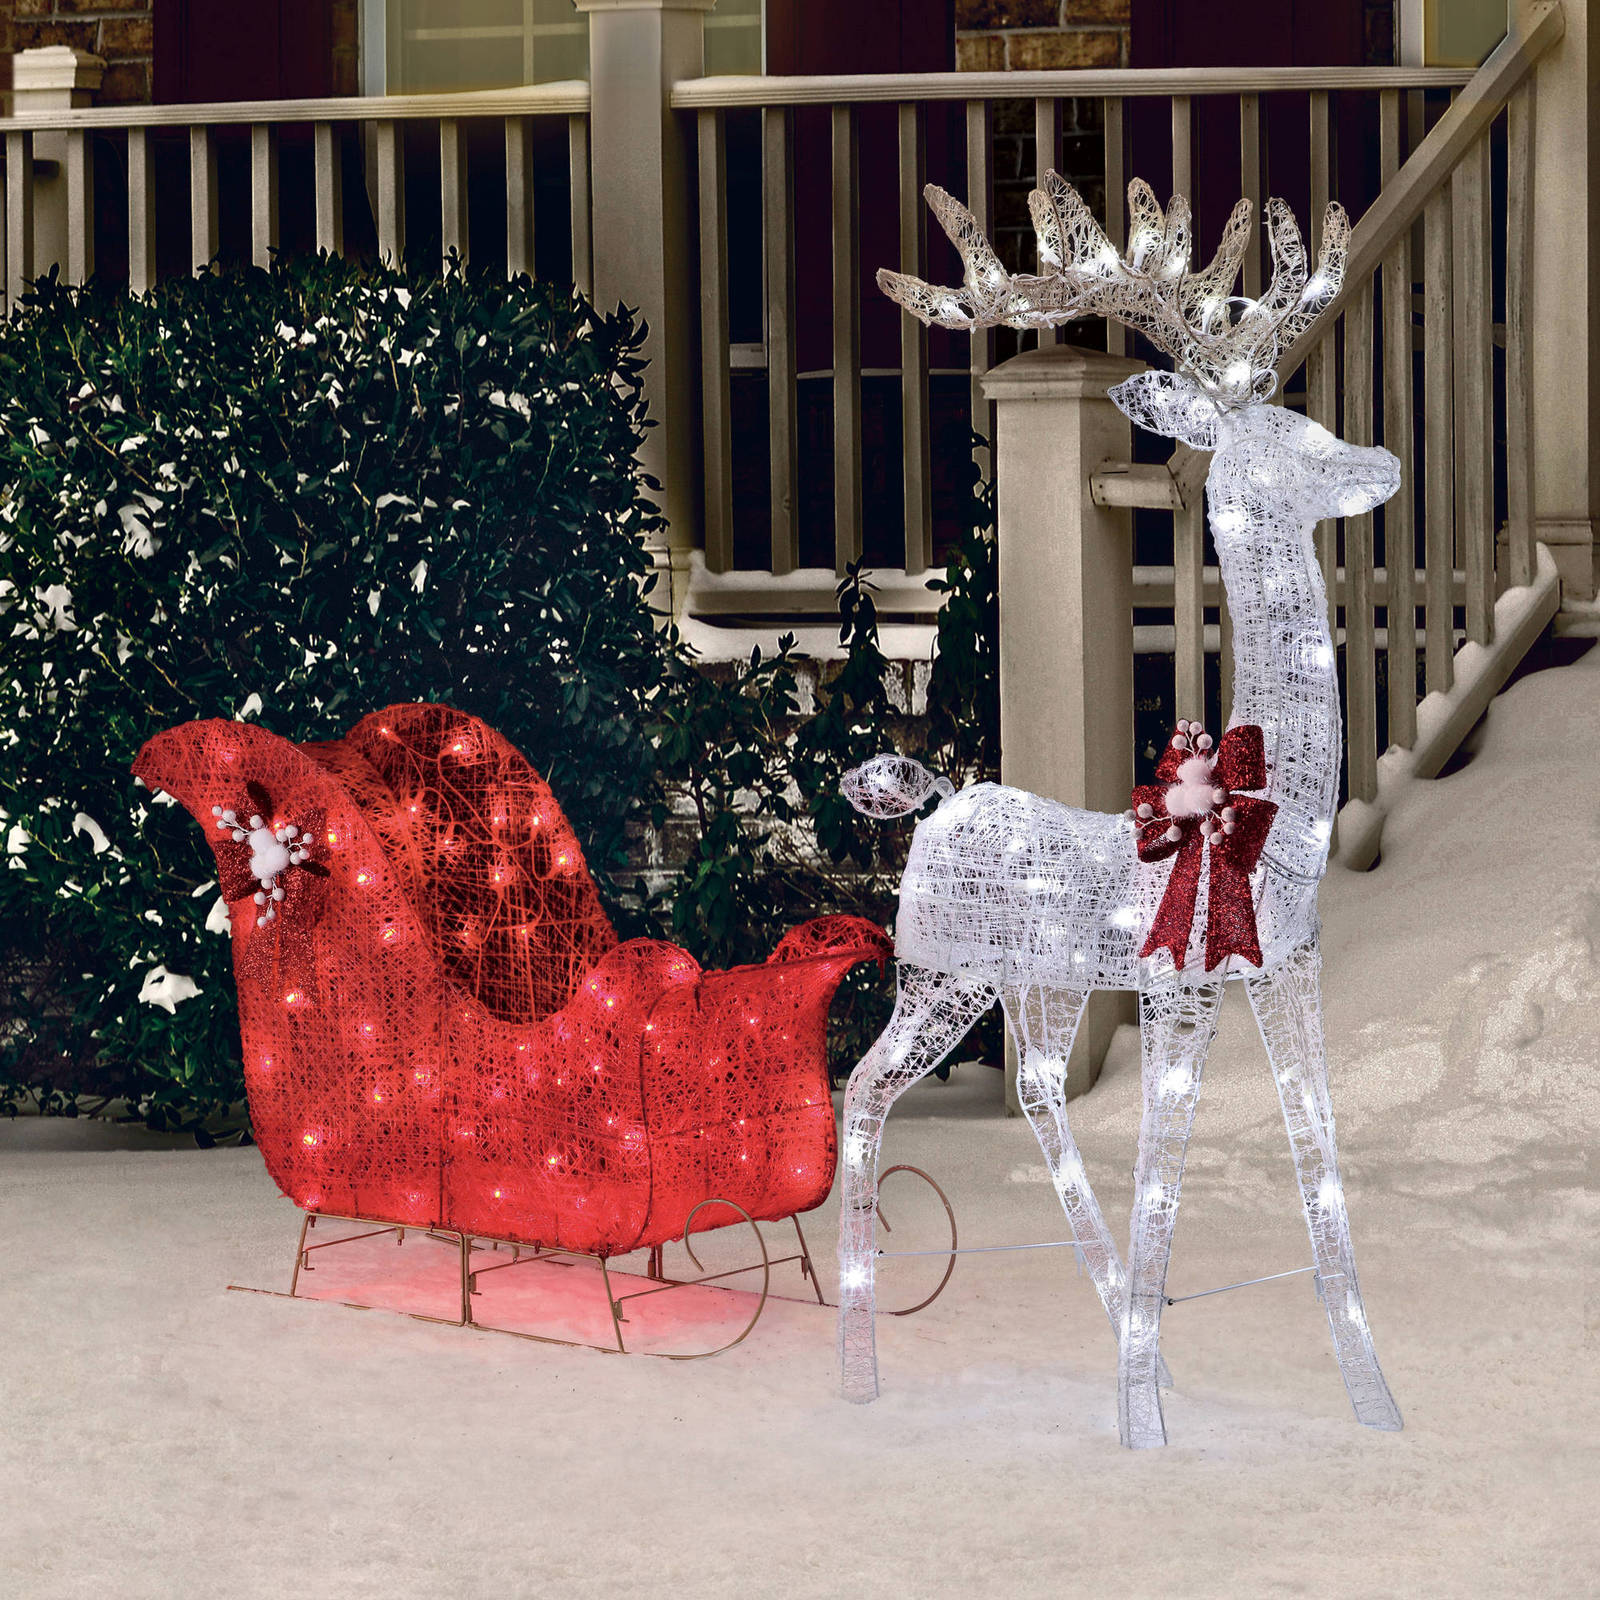 christmas decoration outdoor yard decor pre lit deer santa sleigh xmas sculpture